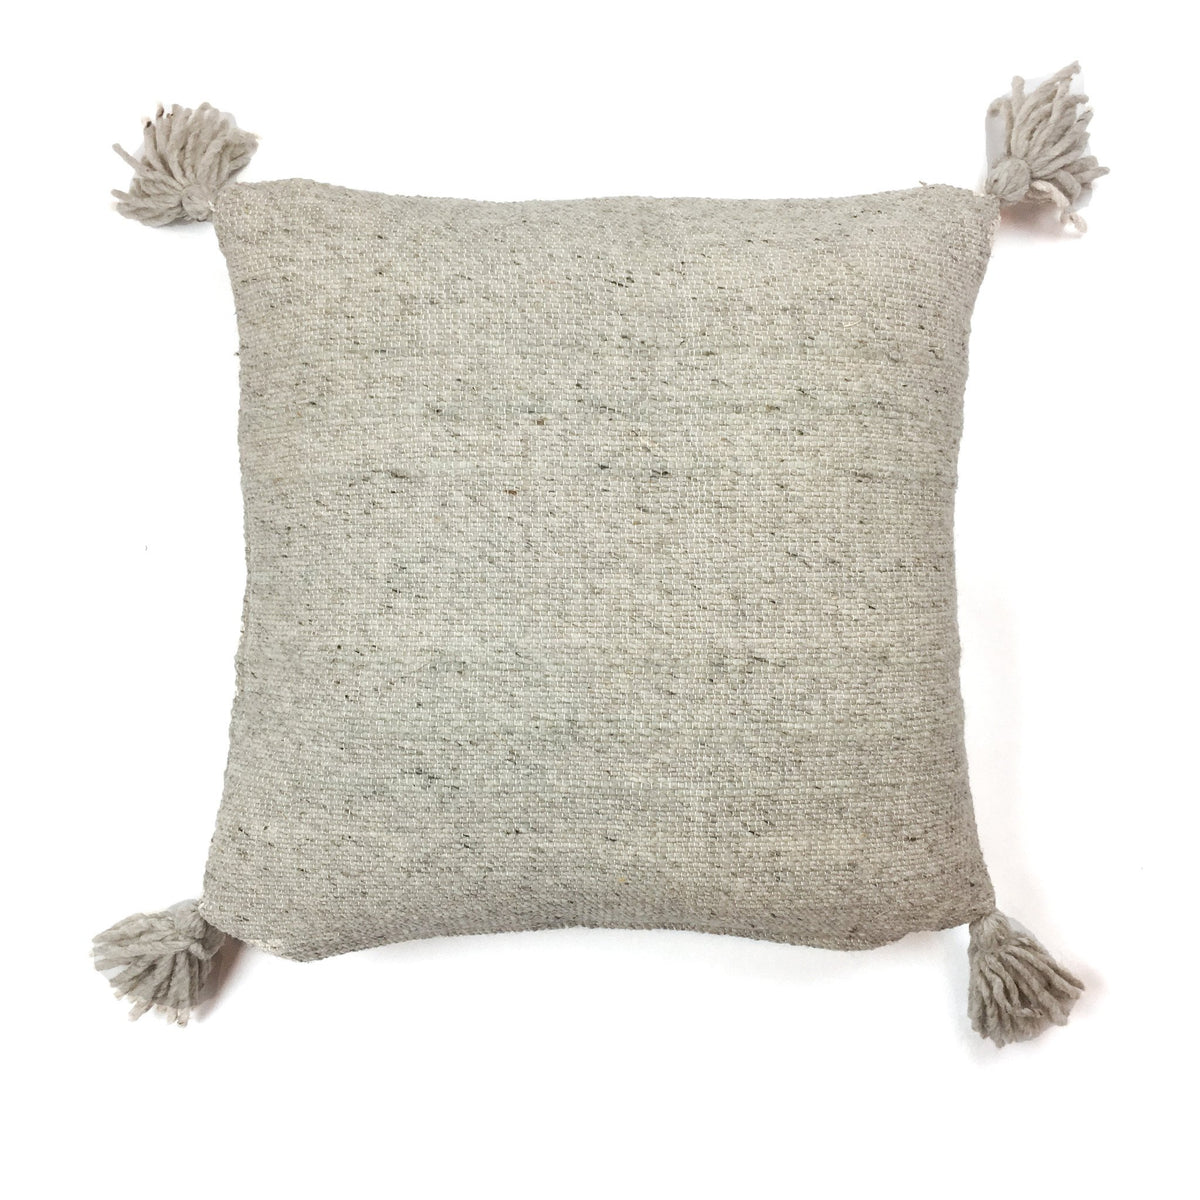 Puro Wool Pillow - Grey